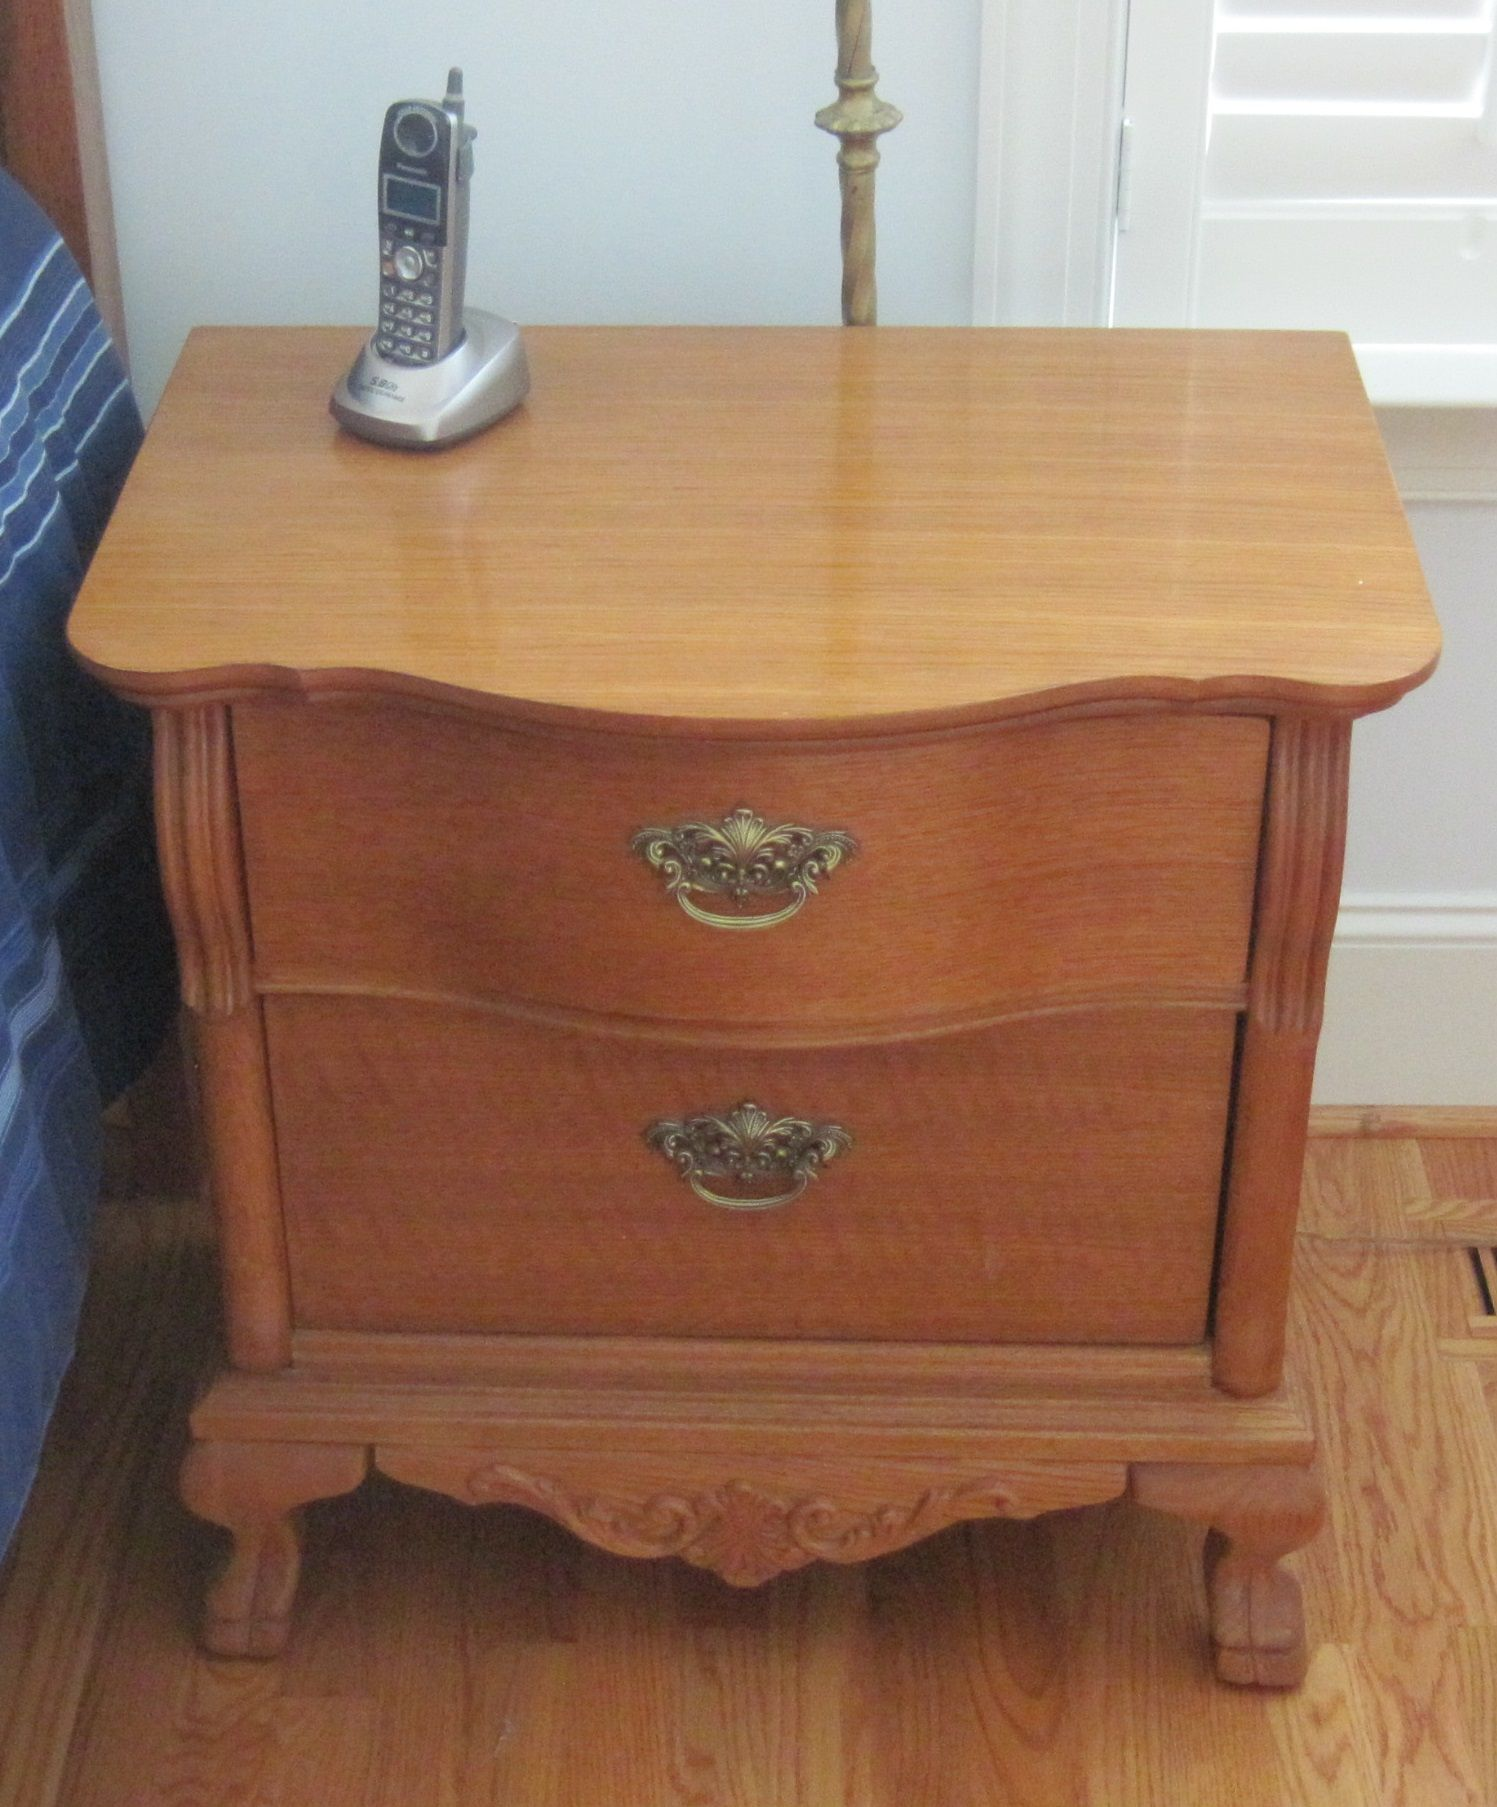 Two night stands lexington victorian sampler furniture - Lexington victorian bedroom furniture ...